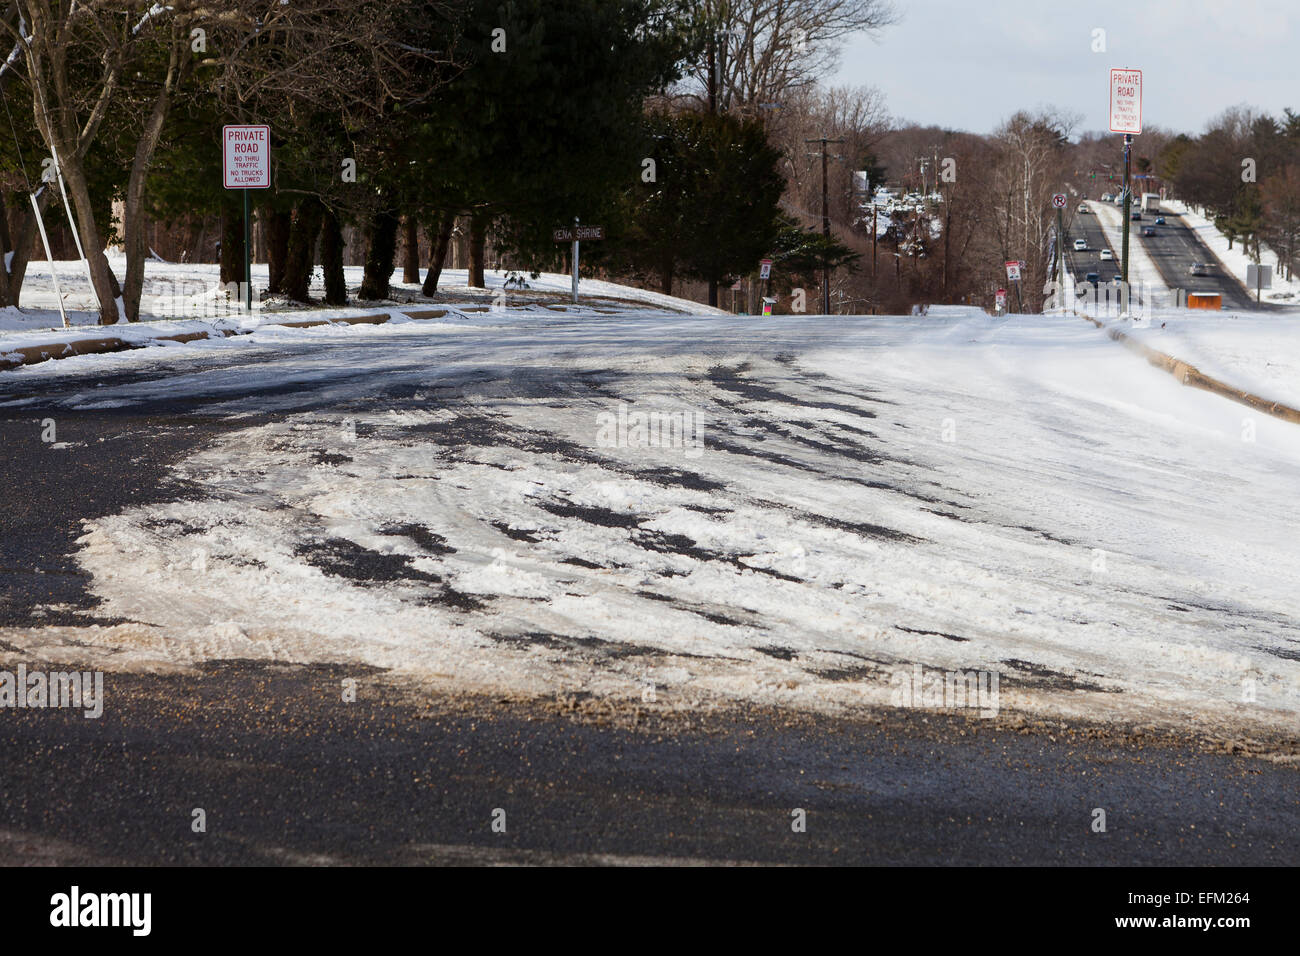 Snow covered roadway - USA - Stock Image